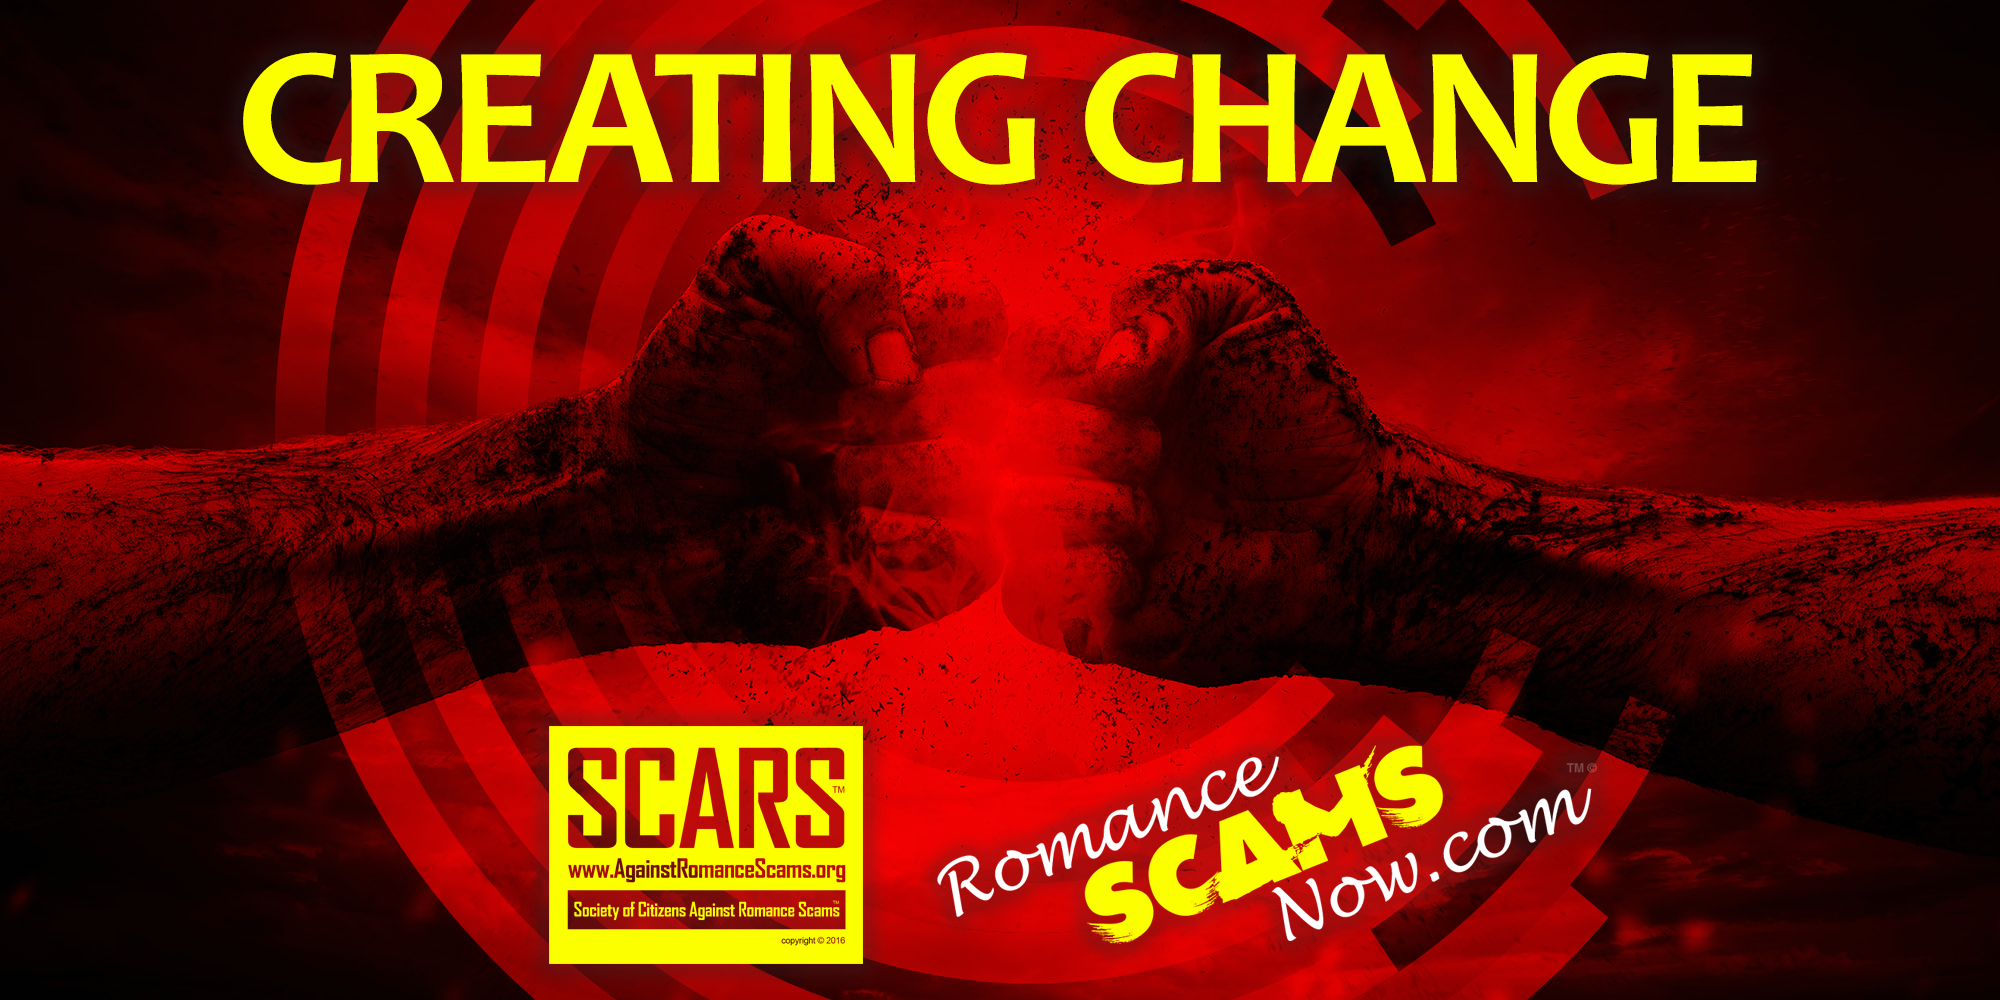 SCARS - CREATING CHANGE